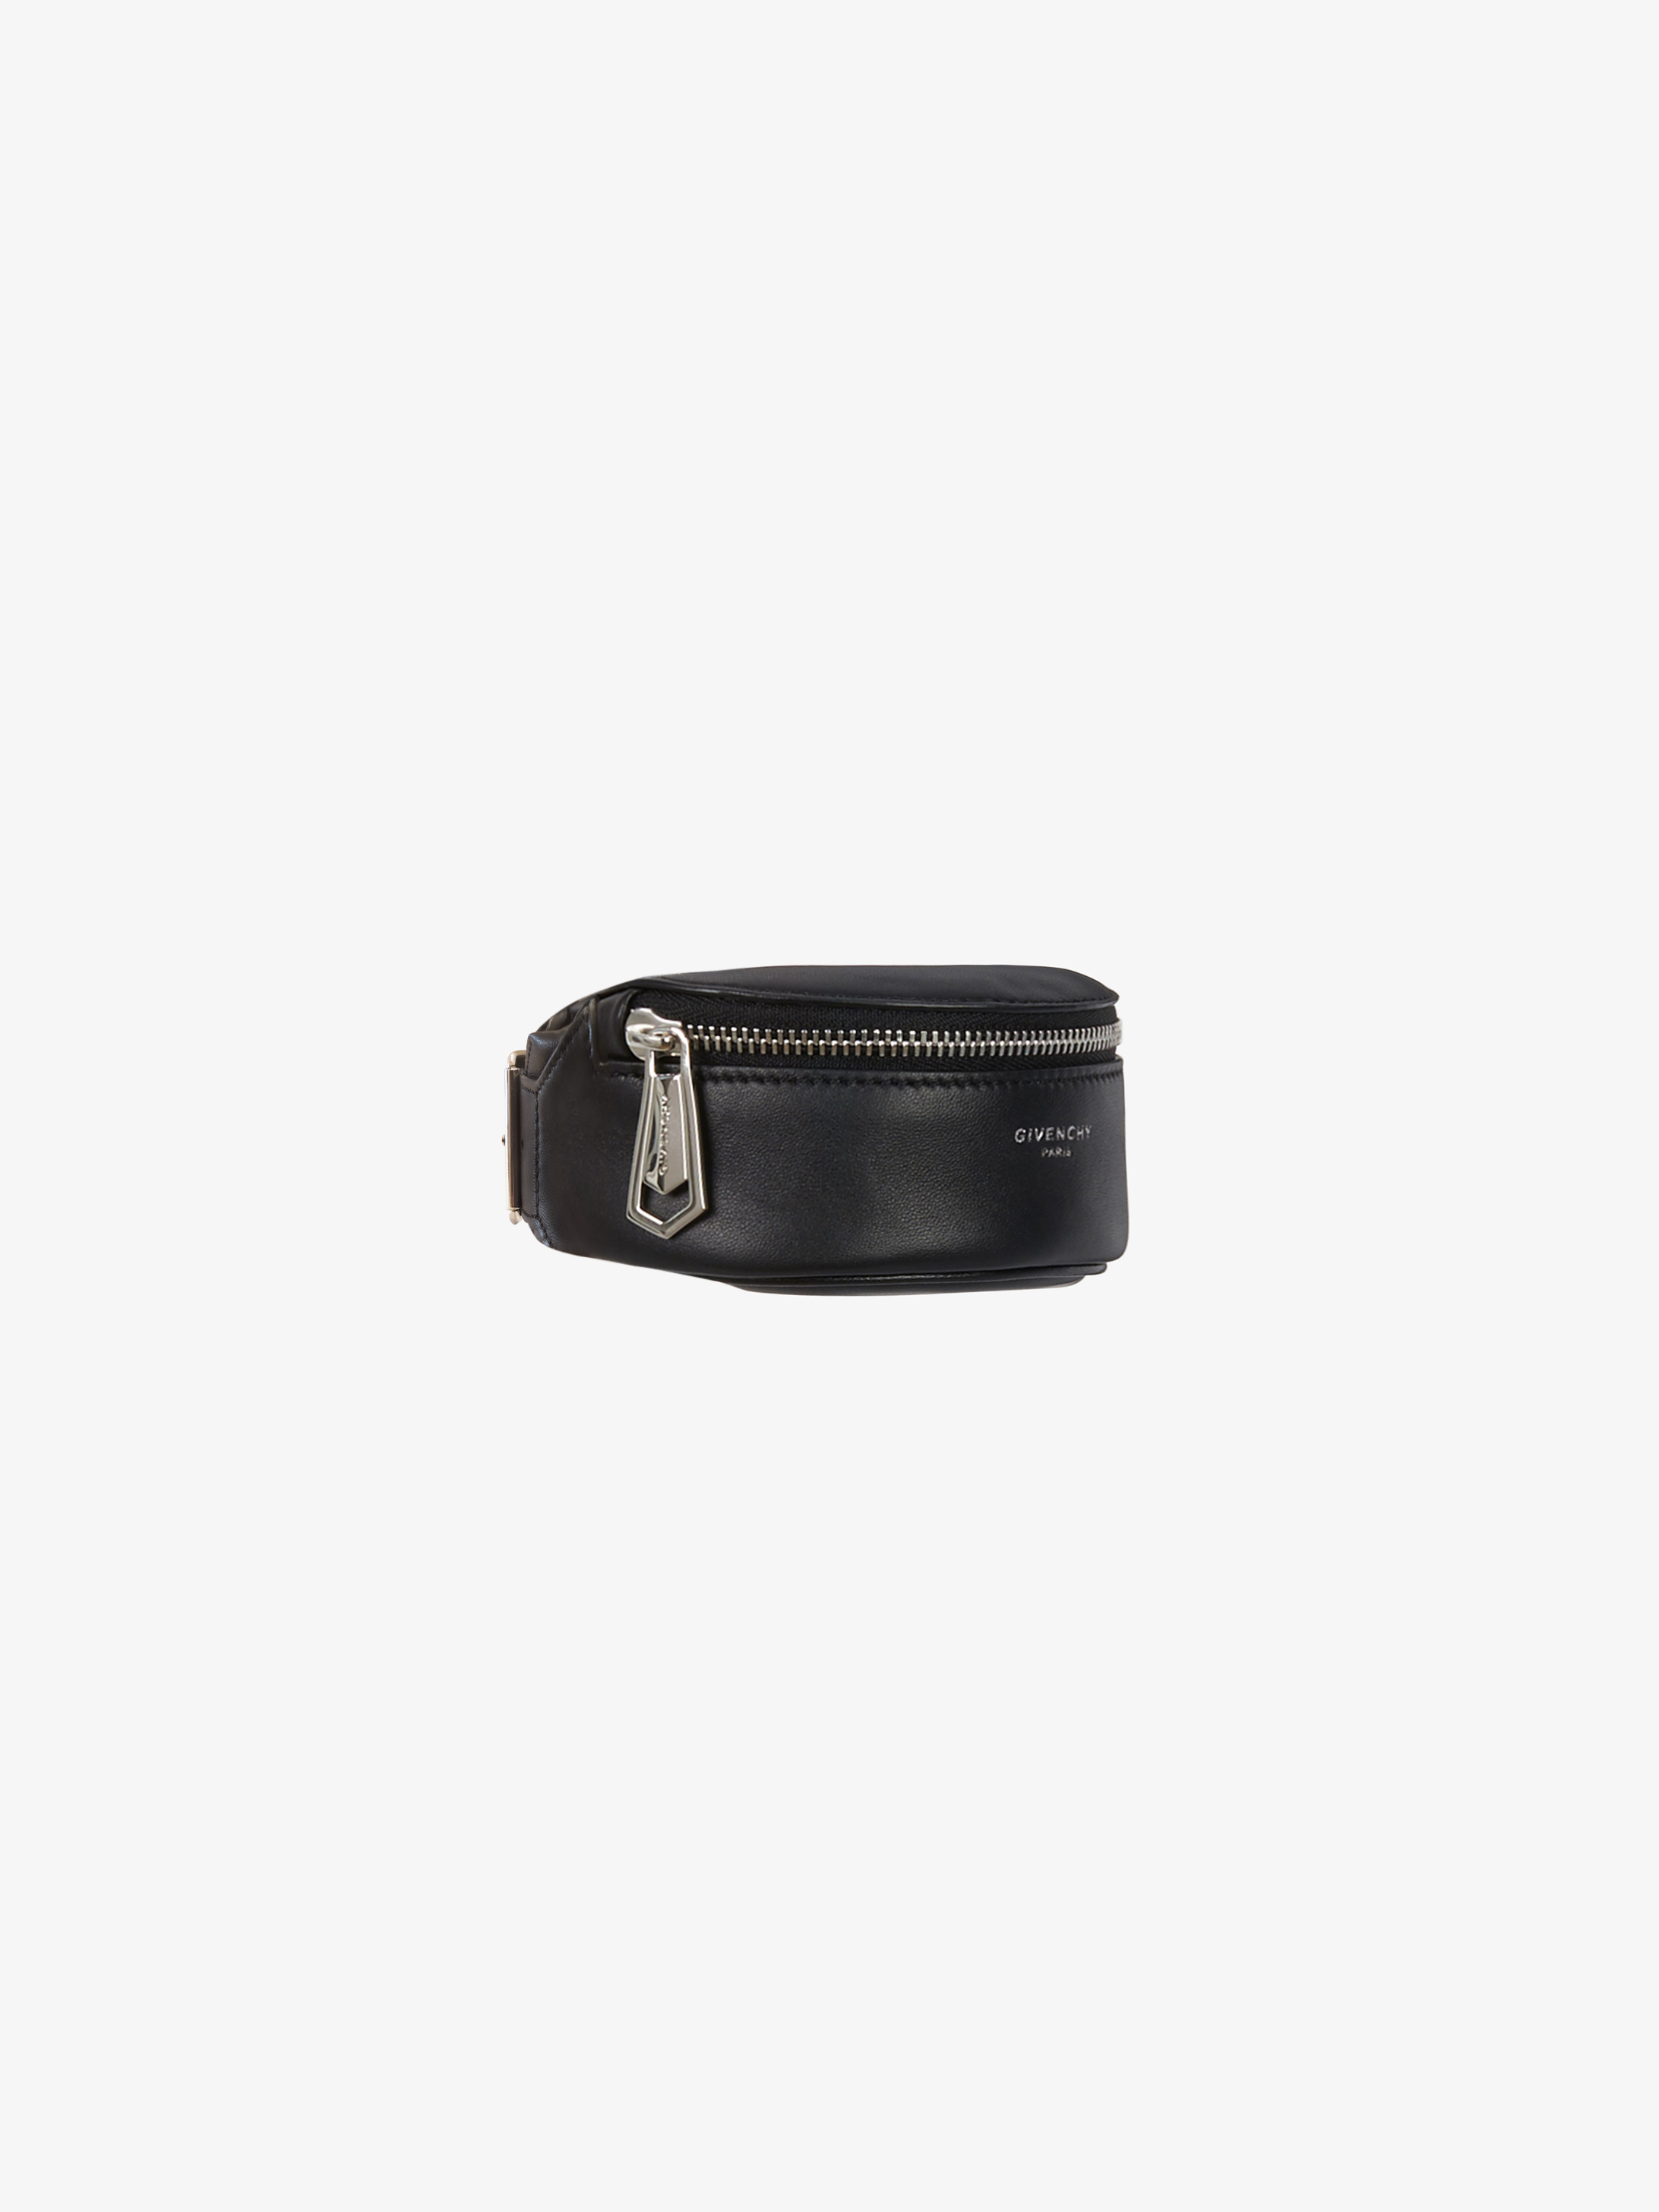 Mini bum bag bracelet in leather